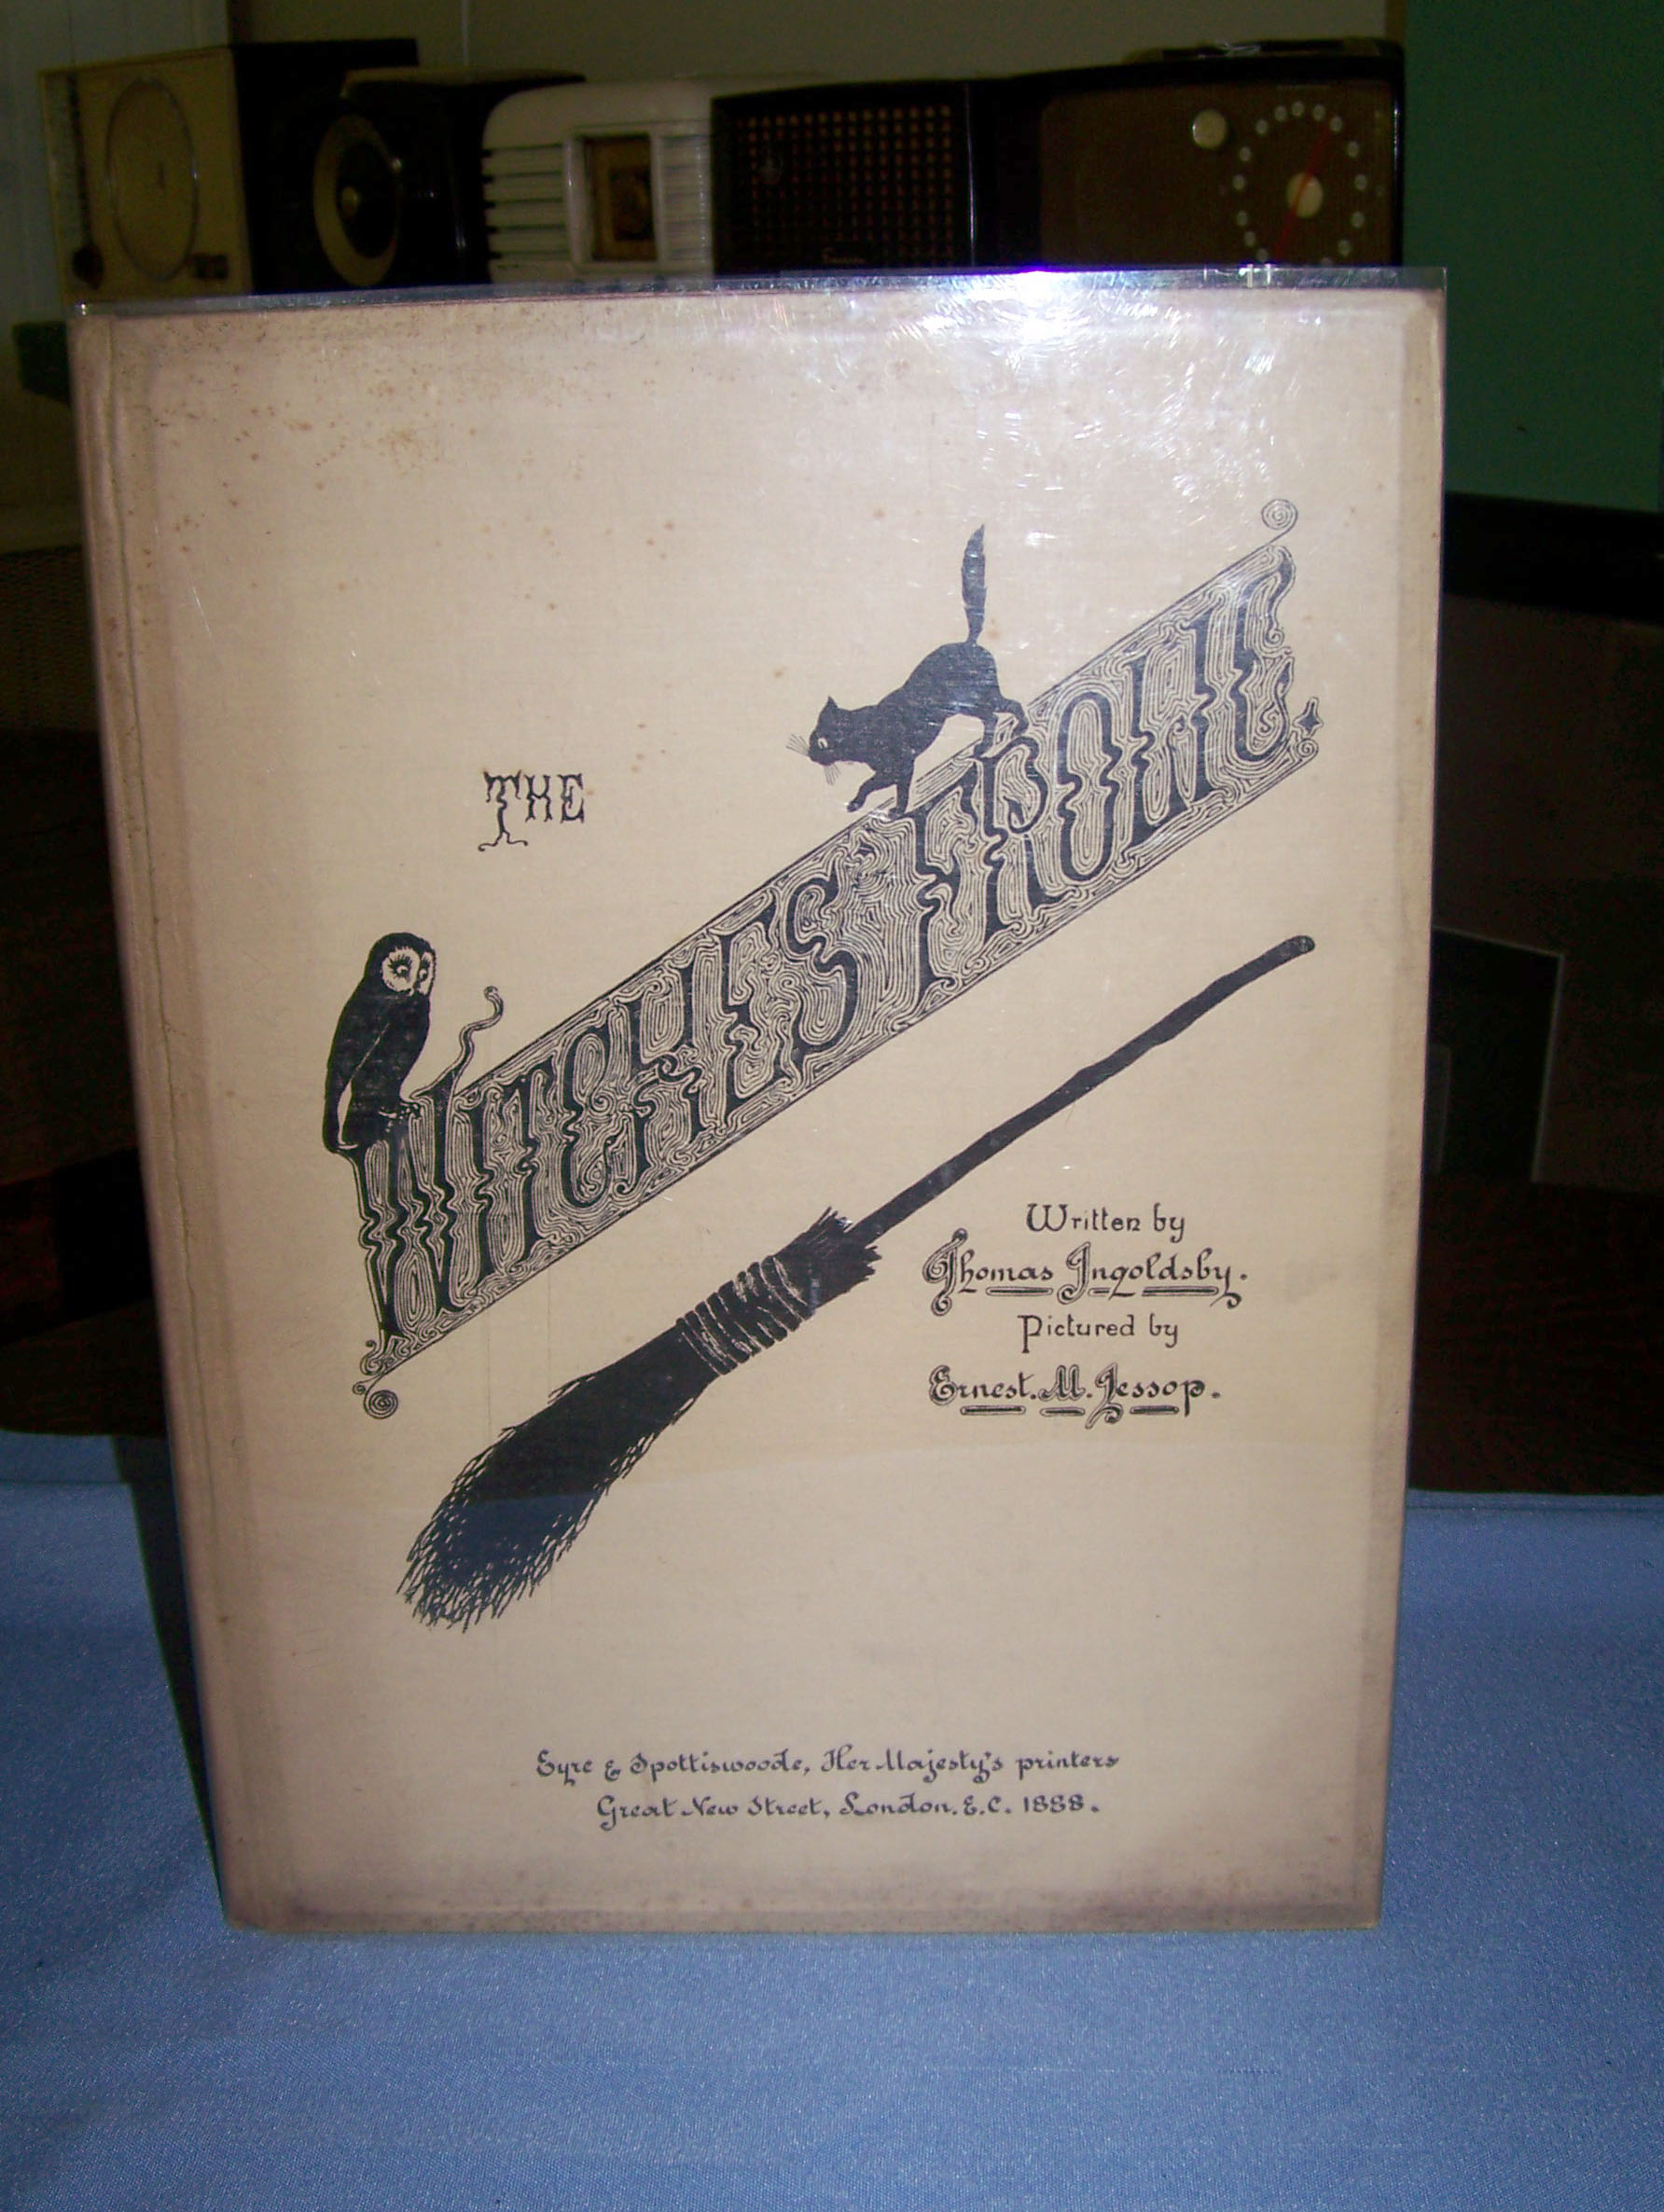 THE WITCHES FROLIC 1st EDITION